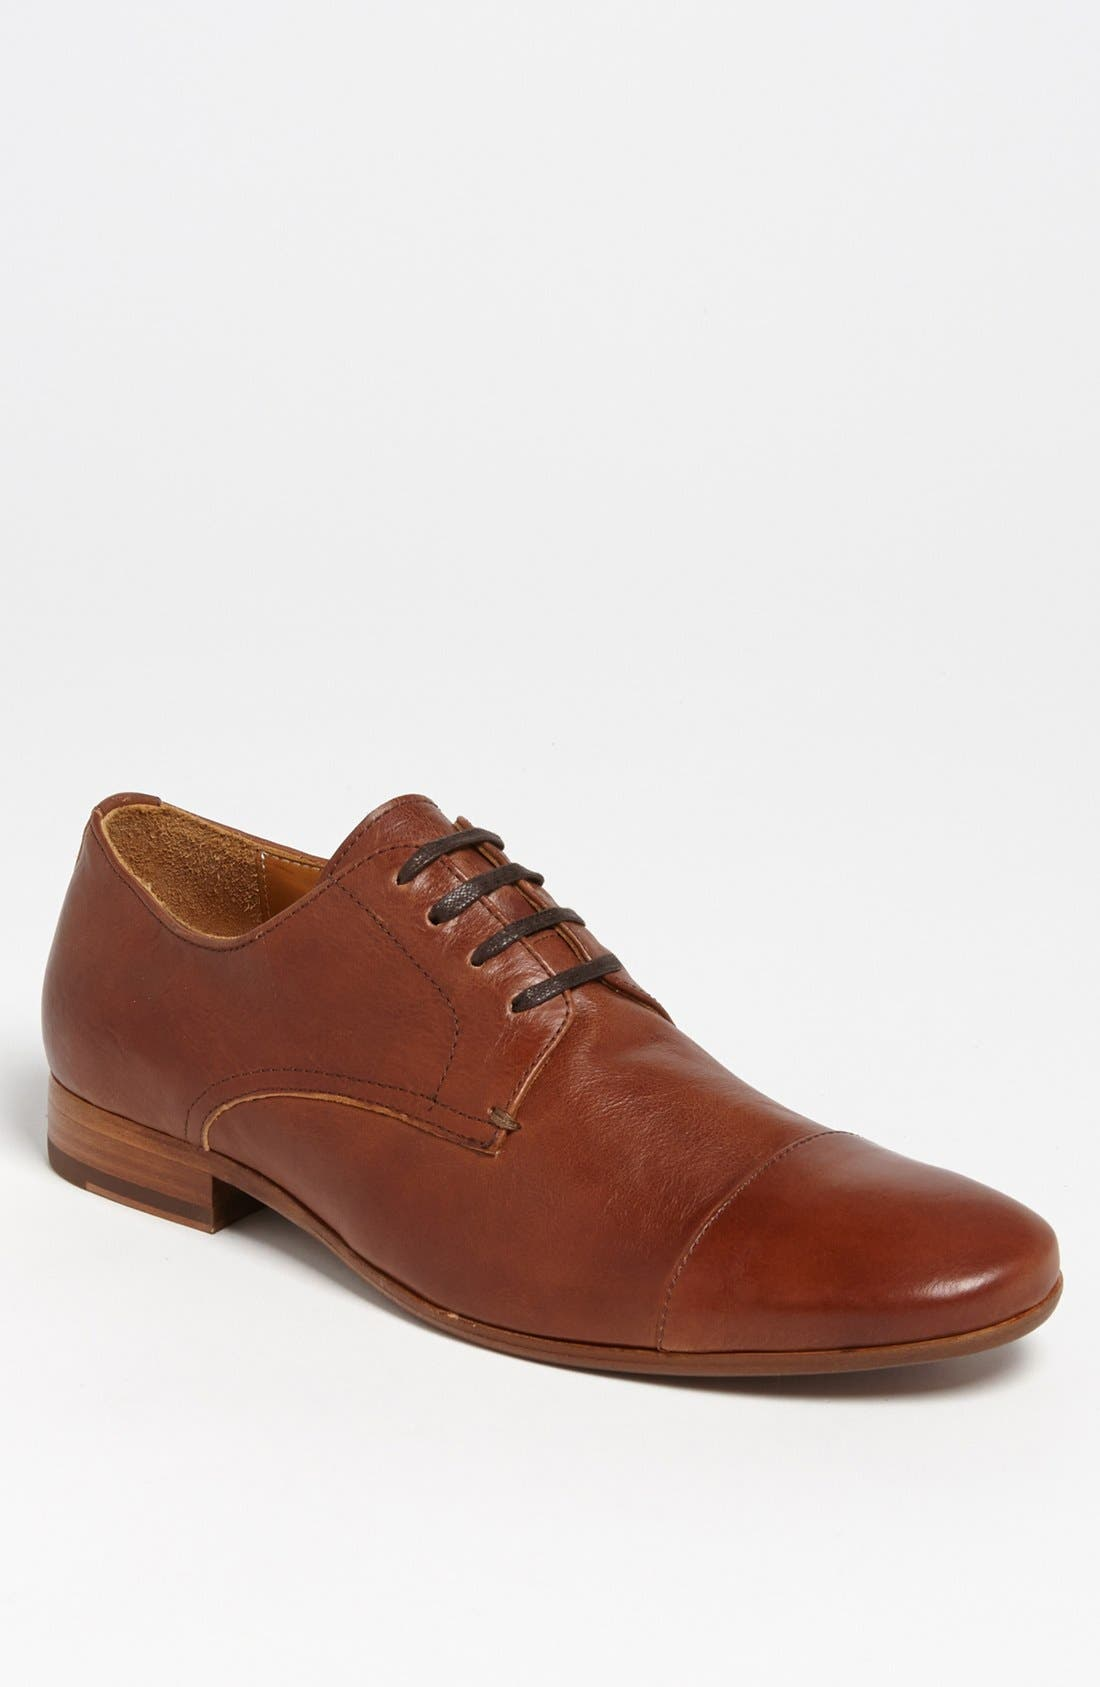 Alternate Image 1 Selected - Maison Forte 'Blackburn' Cap Toe Derby